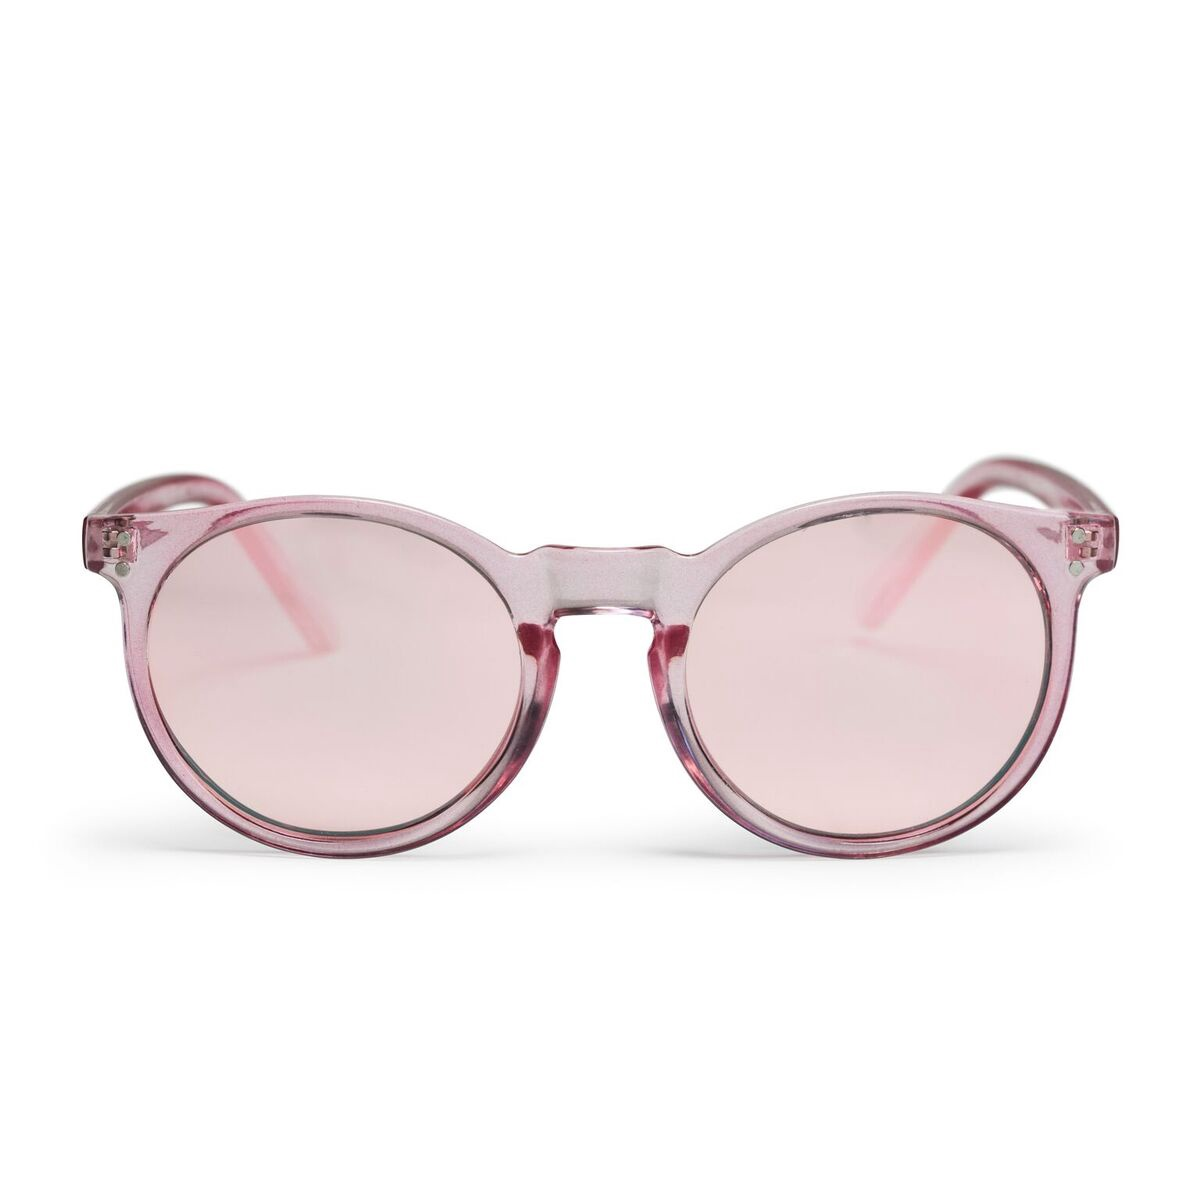 Pink Rocks Sunglasses from CHPO of Sweden